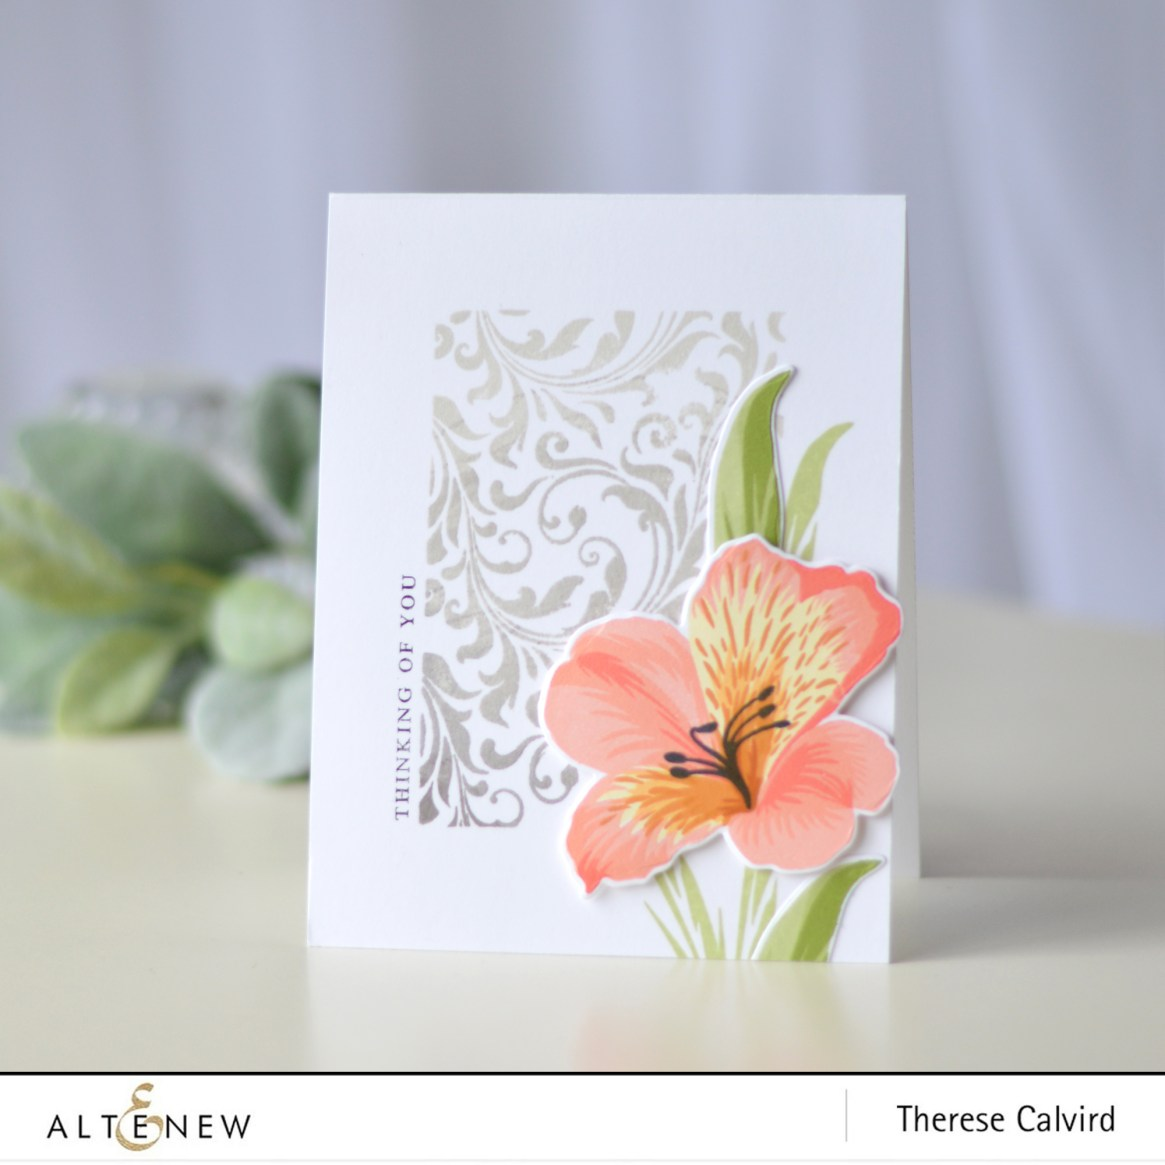 Altenew - Peruvian Lily - Block Print -Therese Calvird (card video) 1 copy